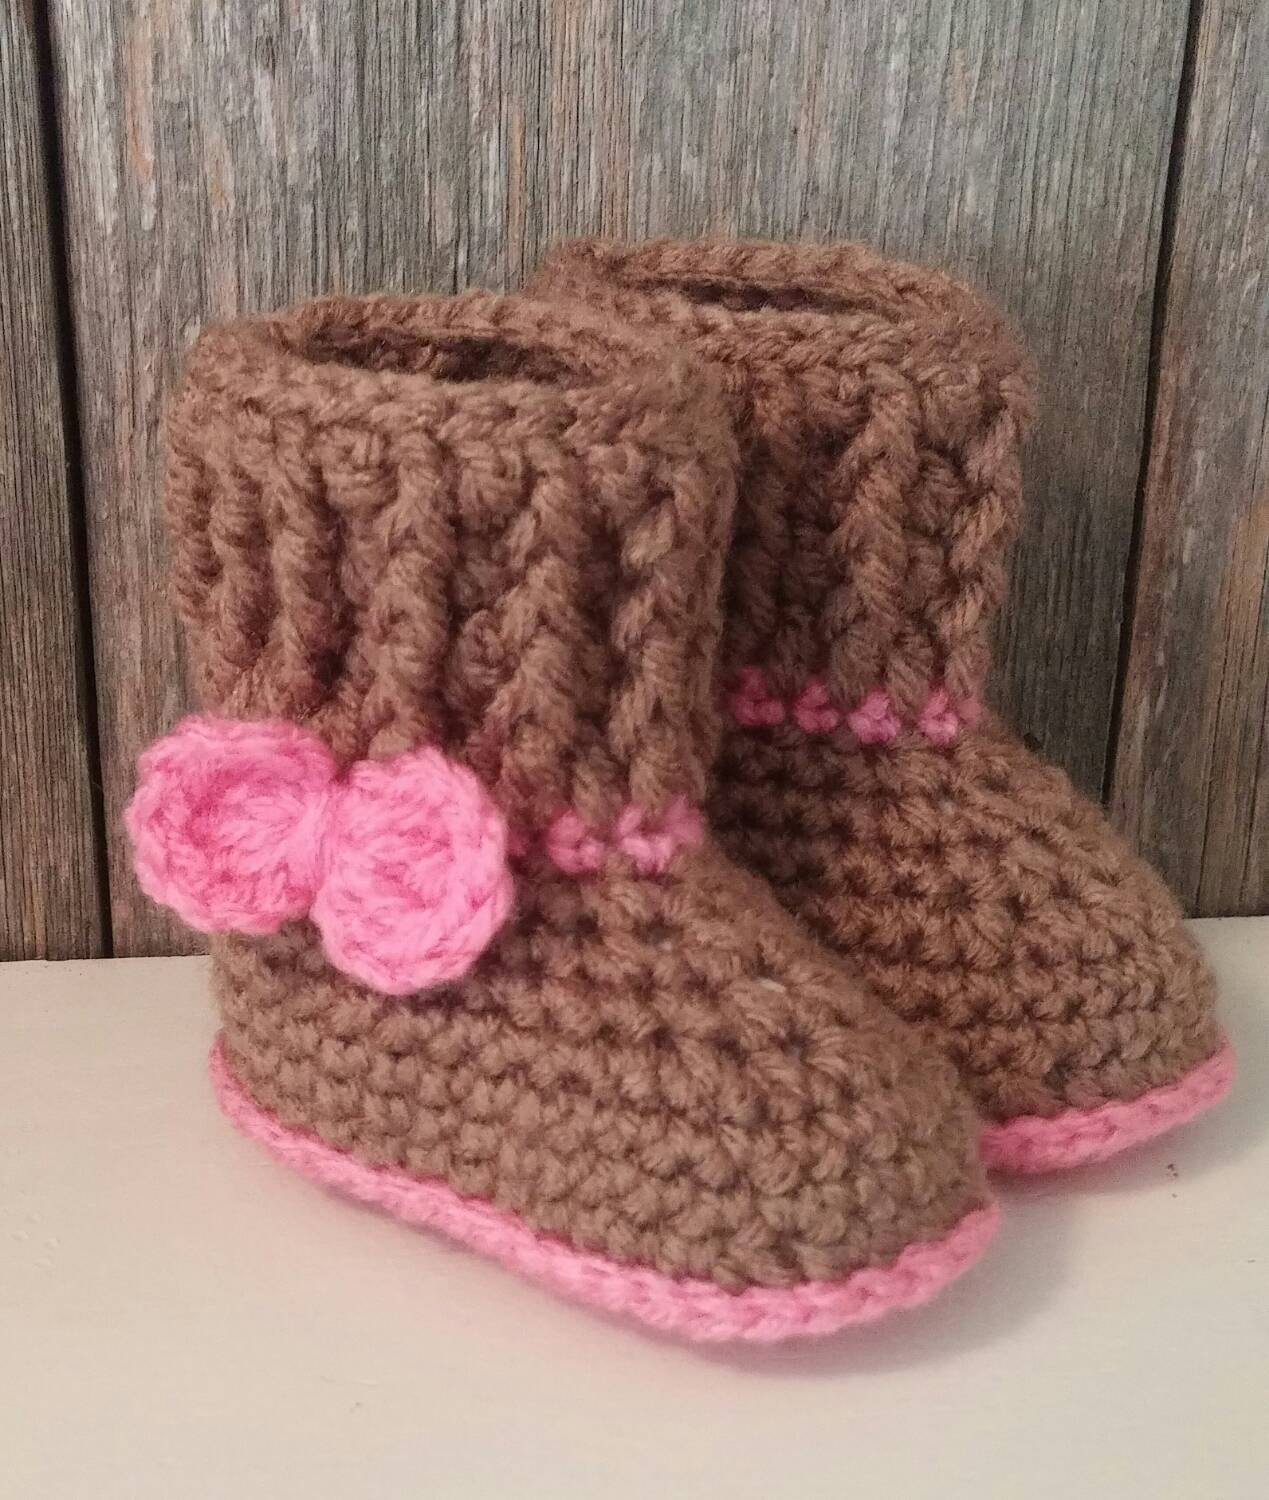 Beautiful Crochet Baby Ugg Boots Tutorial Crochet Uggs Boots Of New 45 Ideas Crochet Uggs Boots